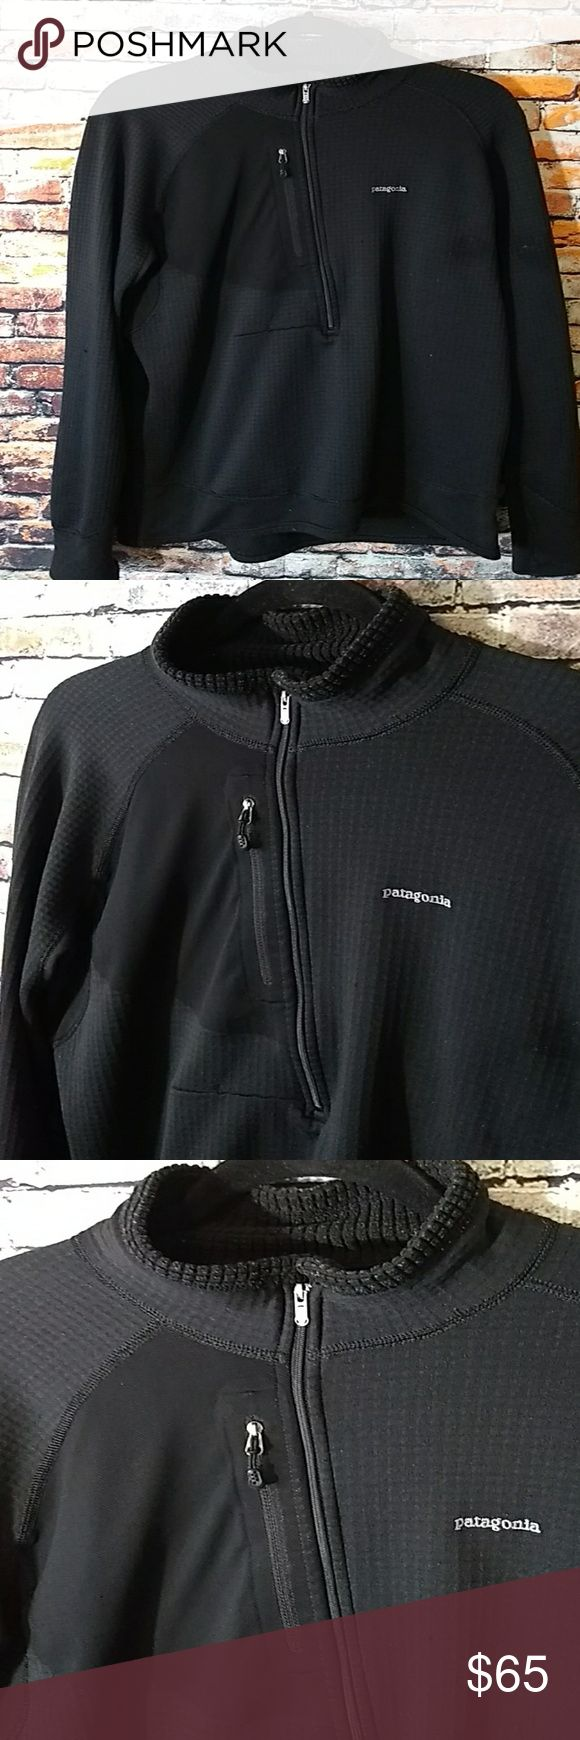 Mens Patagonia large Half Zip Polyester Pullover Size Large , it's a slimmer fit. I'm 5 ft 10 185pds and it's a little form fitting on me. Just a FYI before purchasing Patagonia Jackets & Coats Lightweight & Shirt Jackets